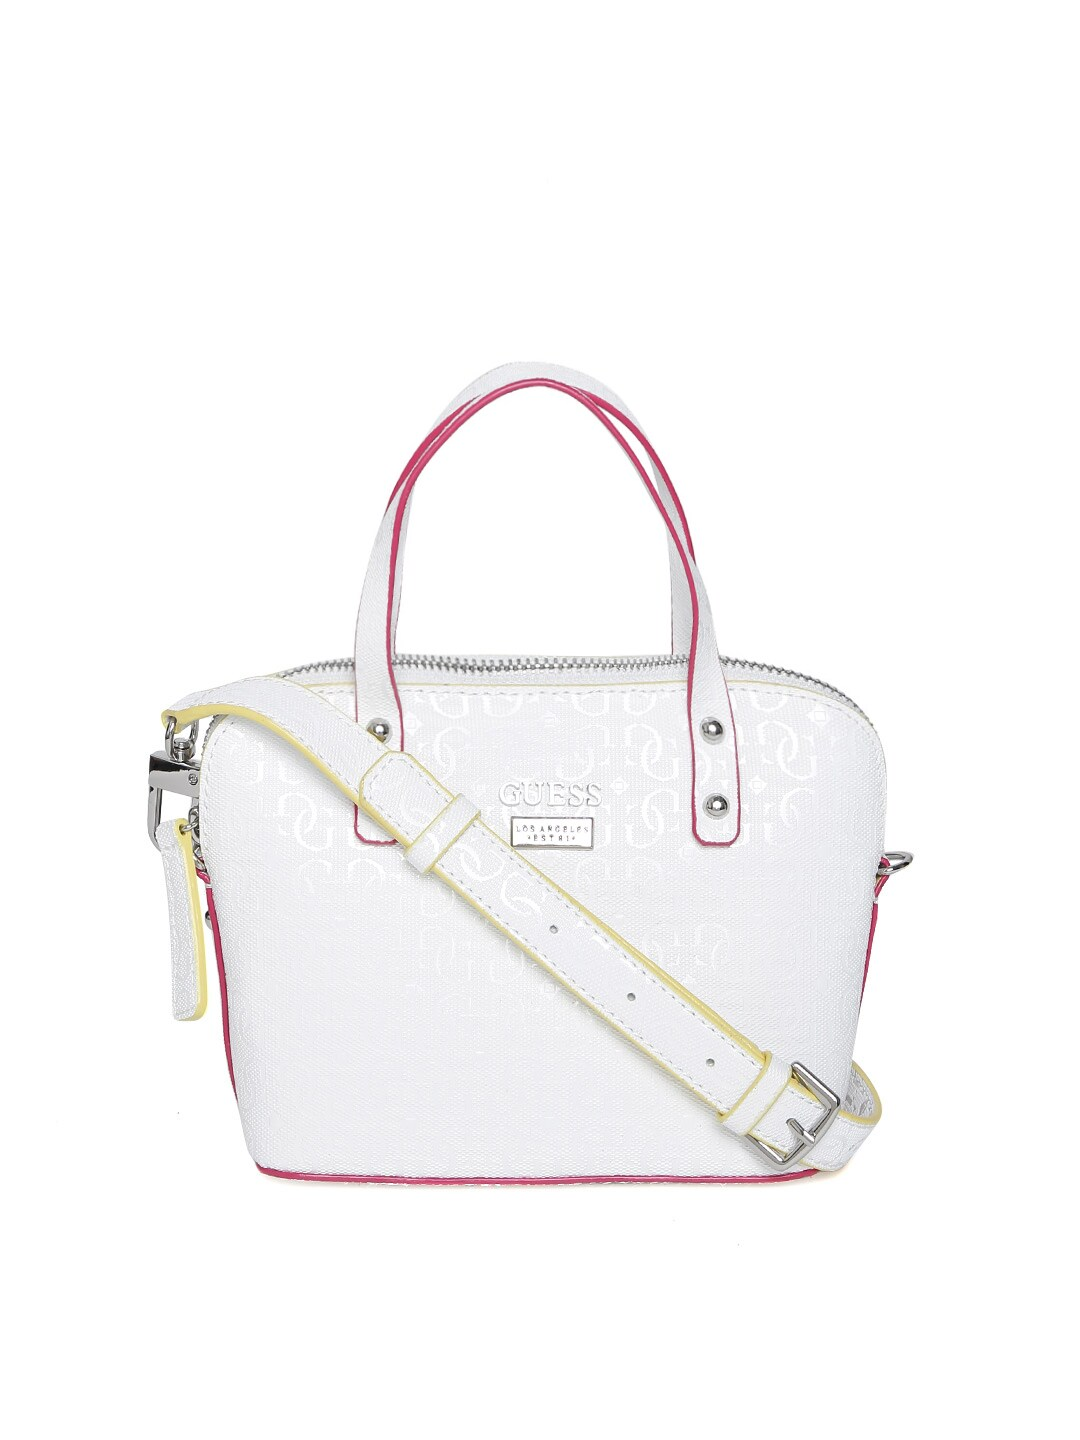 2828200e84 ... Guess Handbags - Buy Guess Handbags online in India speical offer f70ab  113cc ...